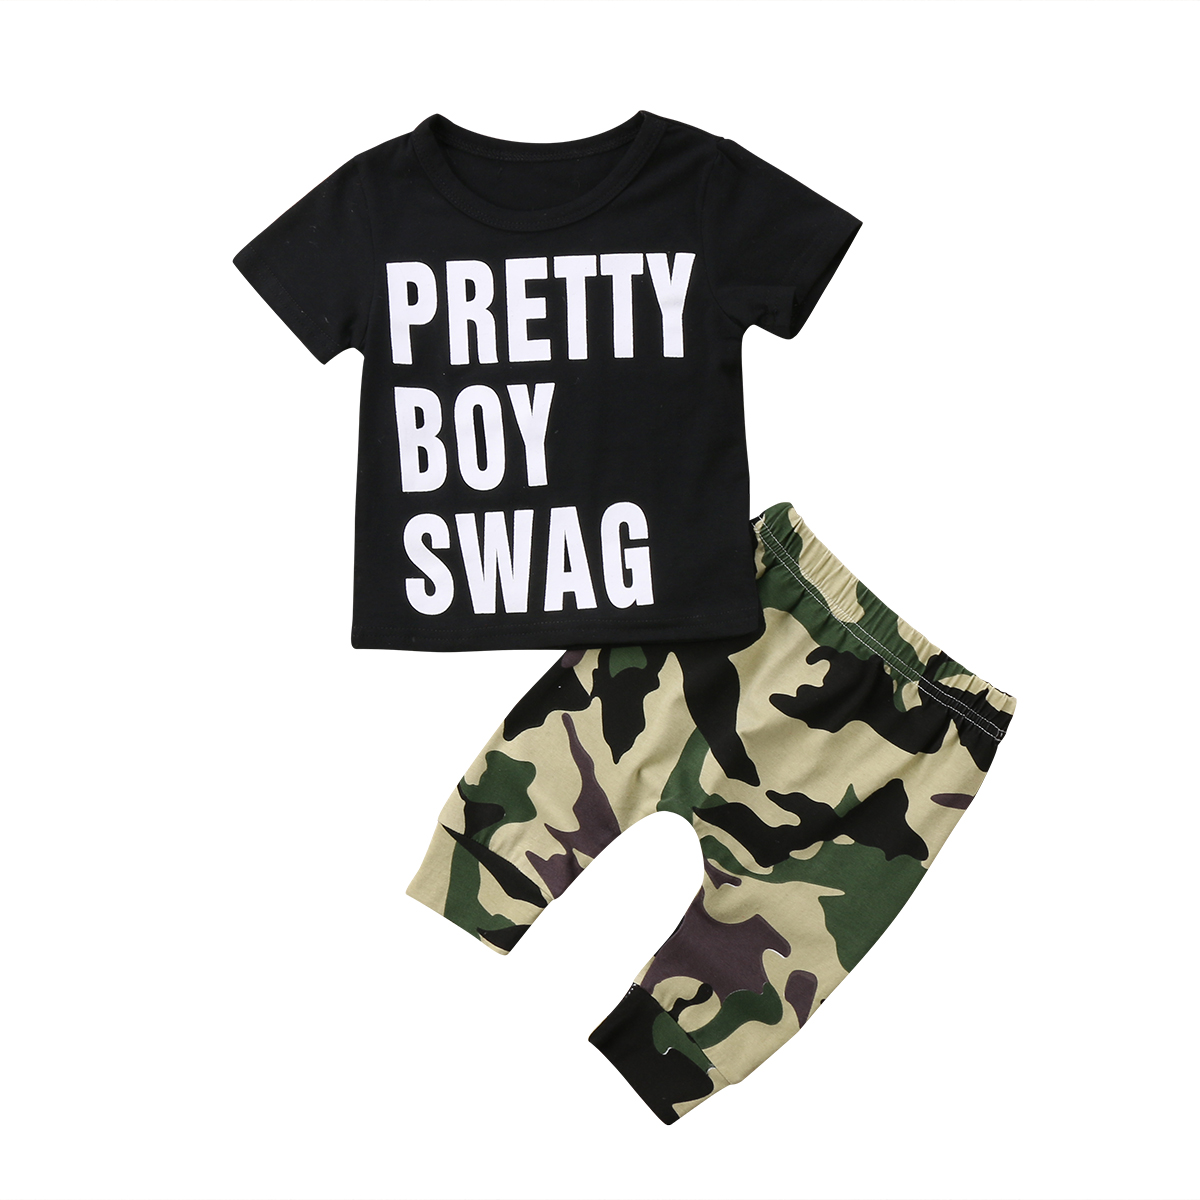 Baby Newborn boy clothes swag pictures photos